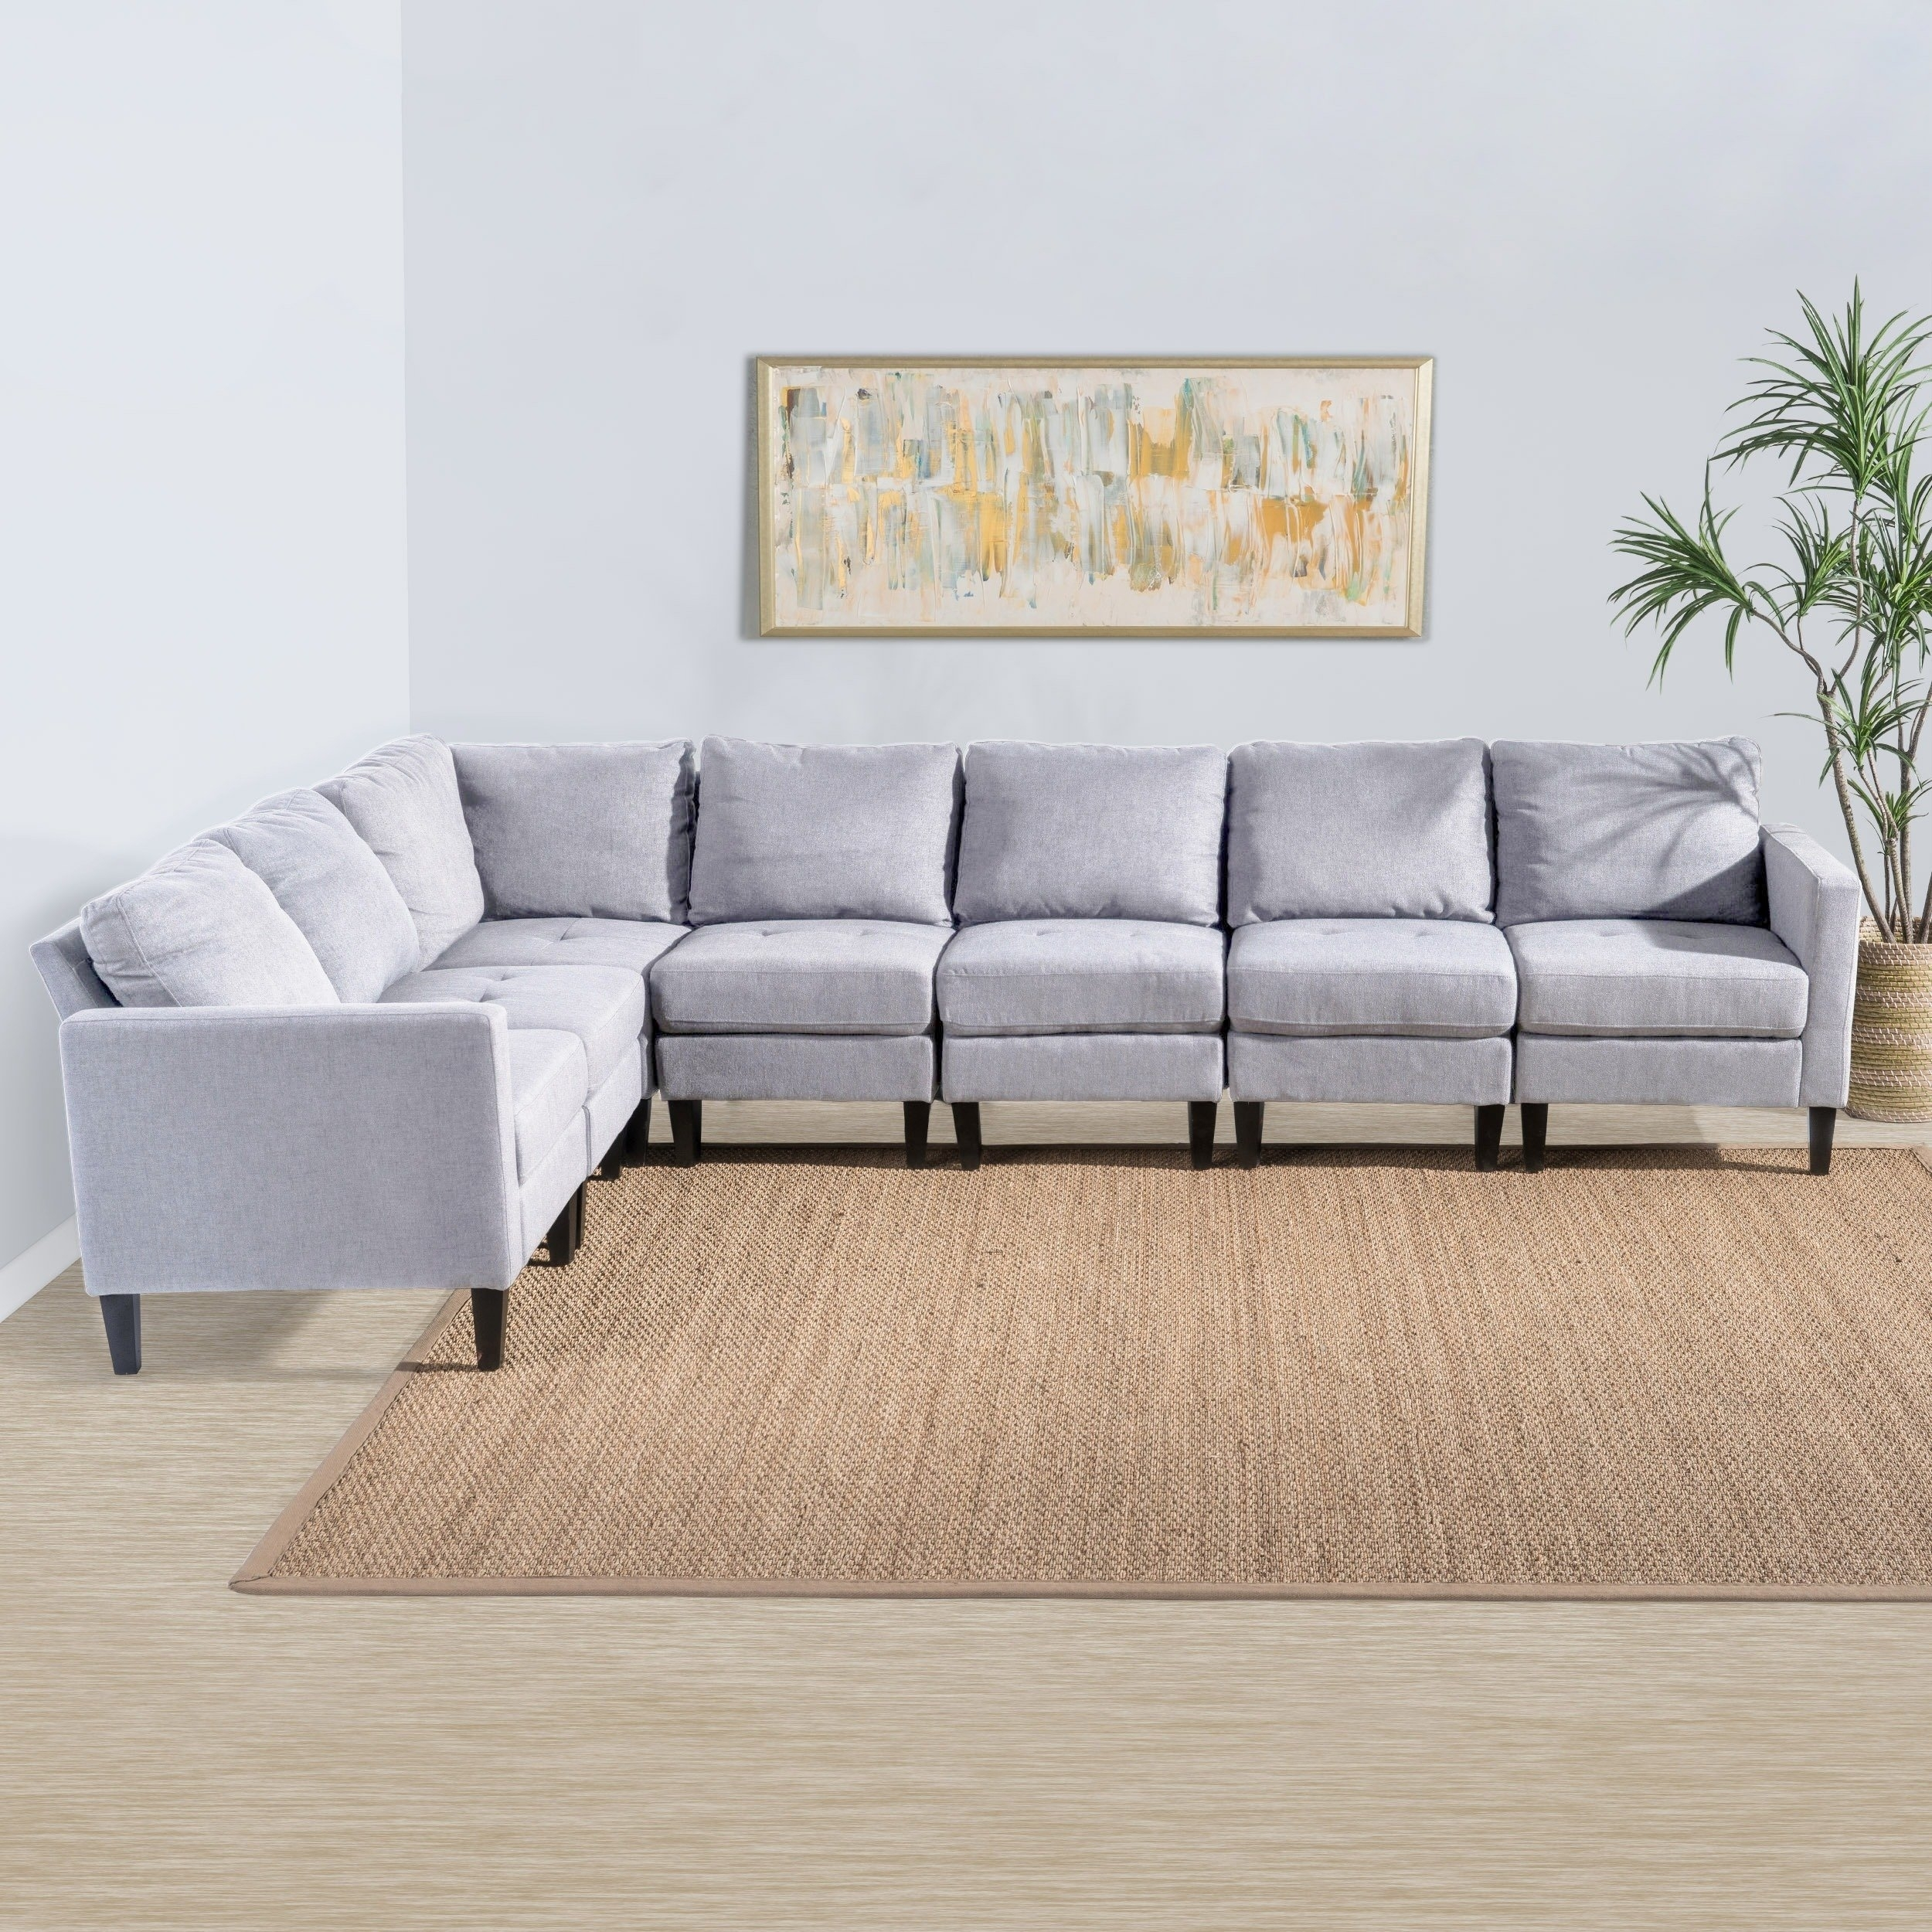 Shop Zahra 7 Piece Fabric Sectional Sofa Setchristopher Knight Within Haven Blue Steel 3 Piece Sectionals (Image 25 of 25)